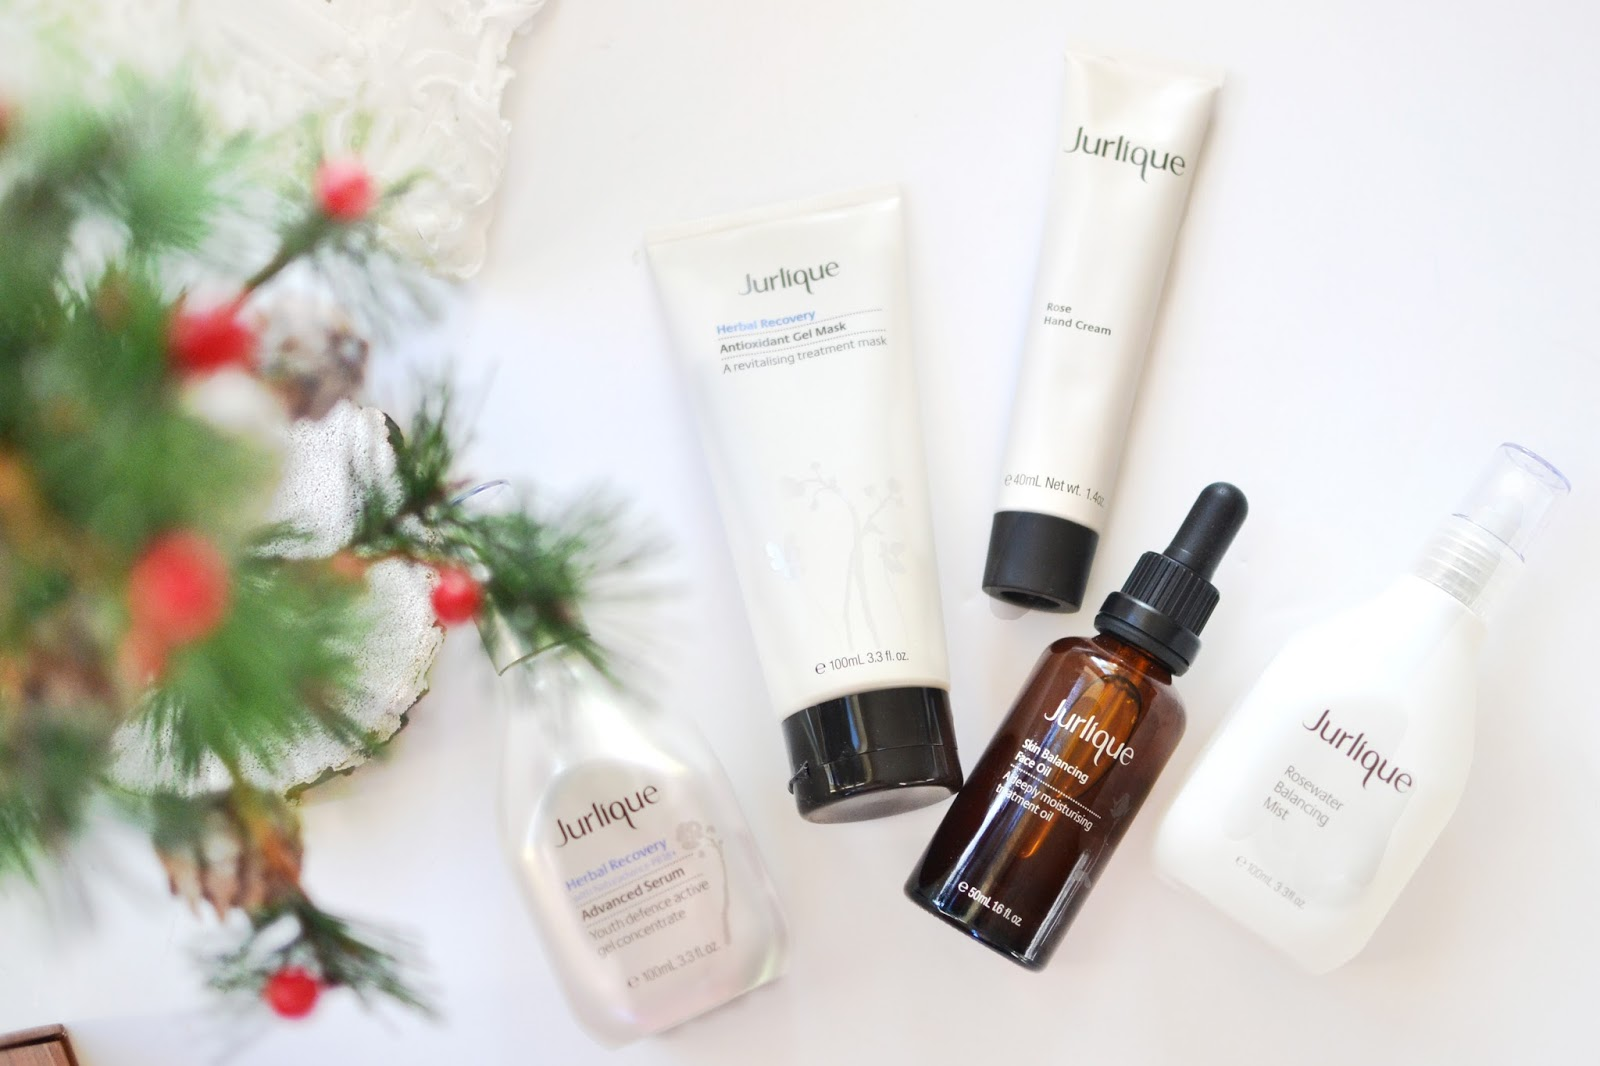 Jurlique skincare review, jurlique ultimate face and body collection